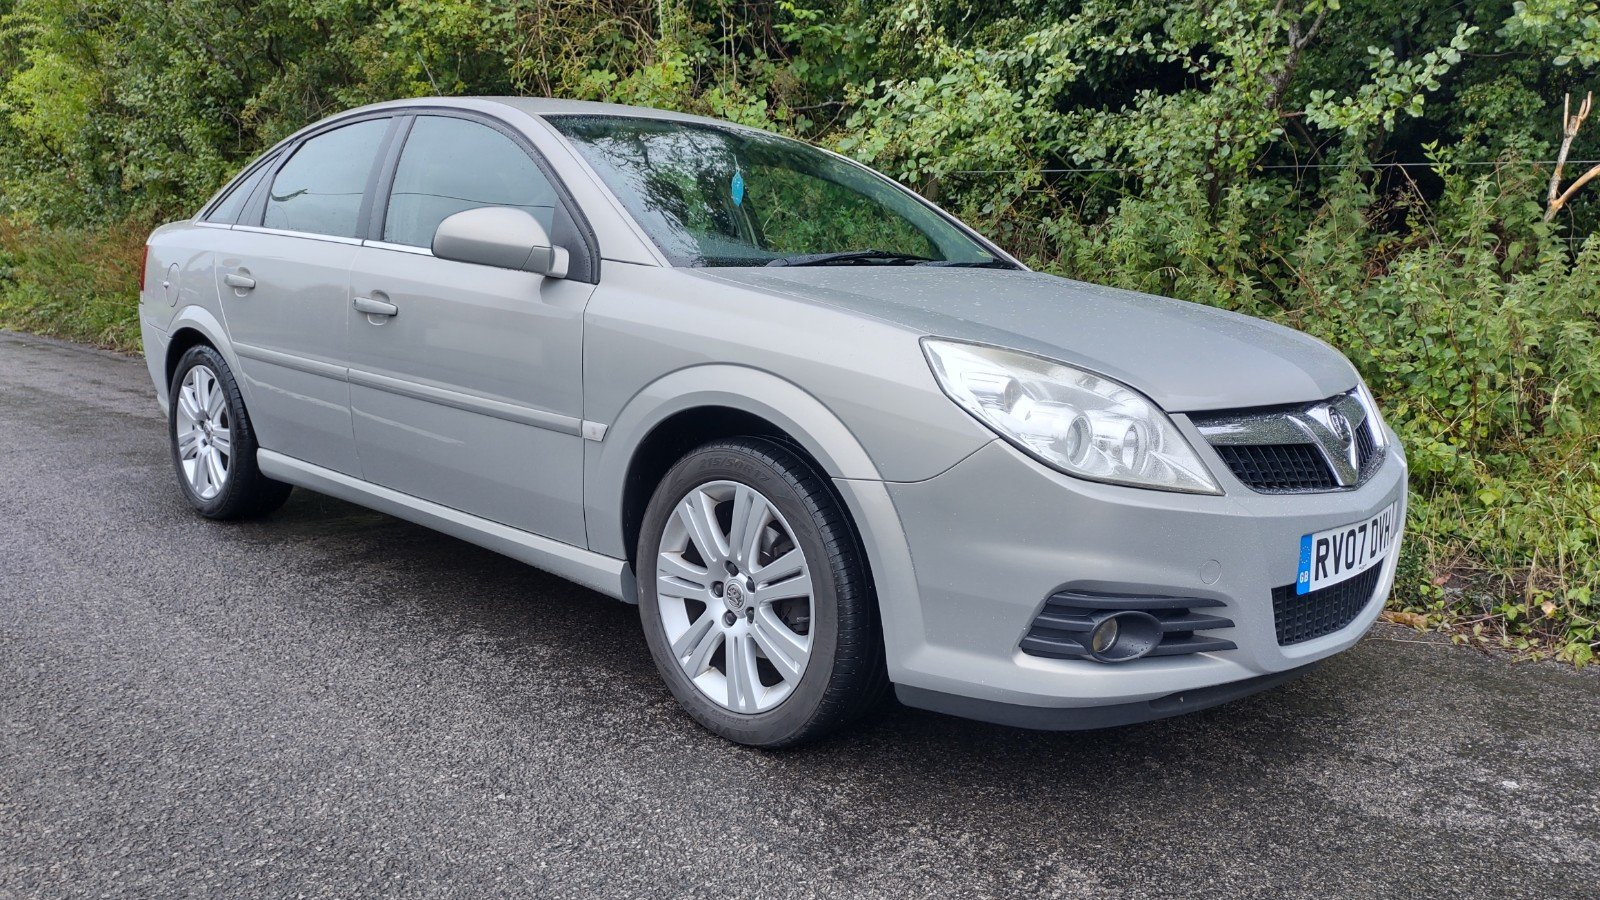 2007 Vectra Exclusive, technician owned, for sale For Sale (picture 2 of 5)